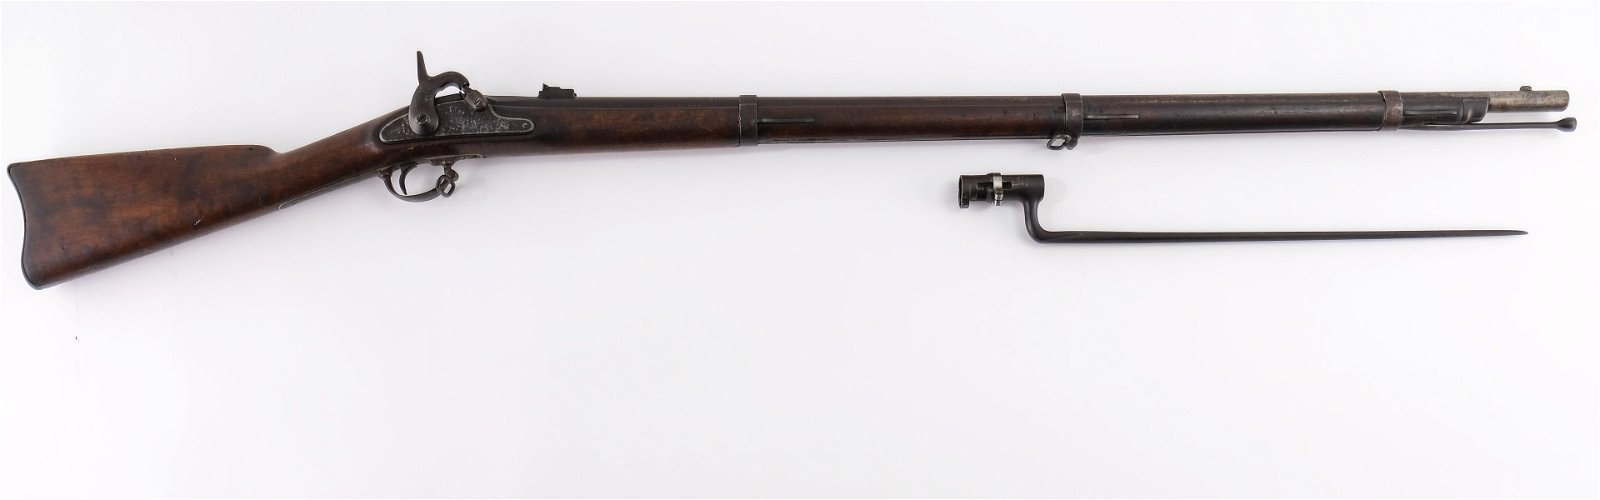 .58 1861 Springfield Percussion Rifle